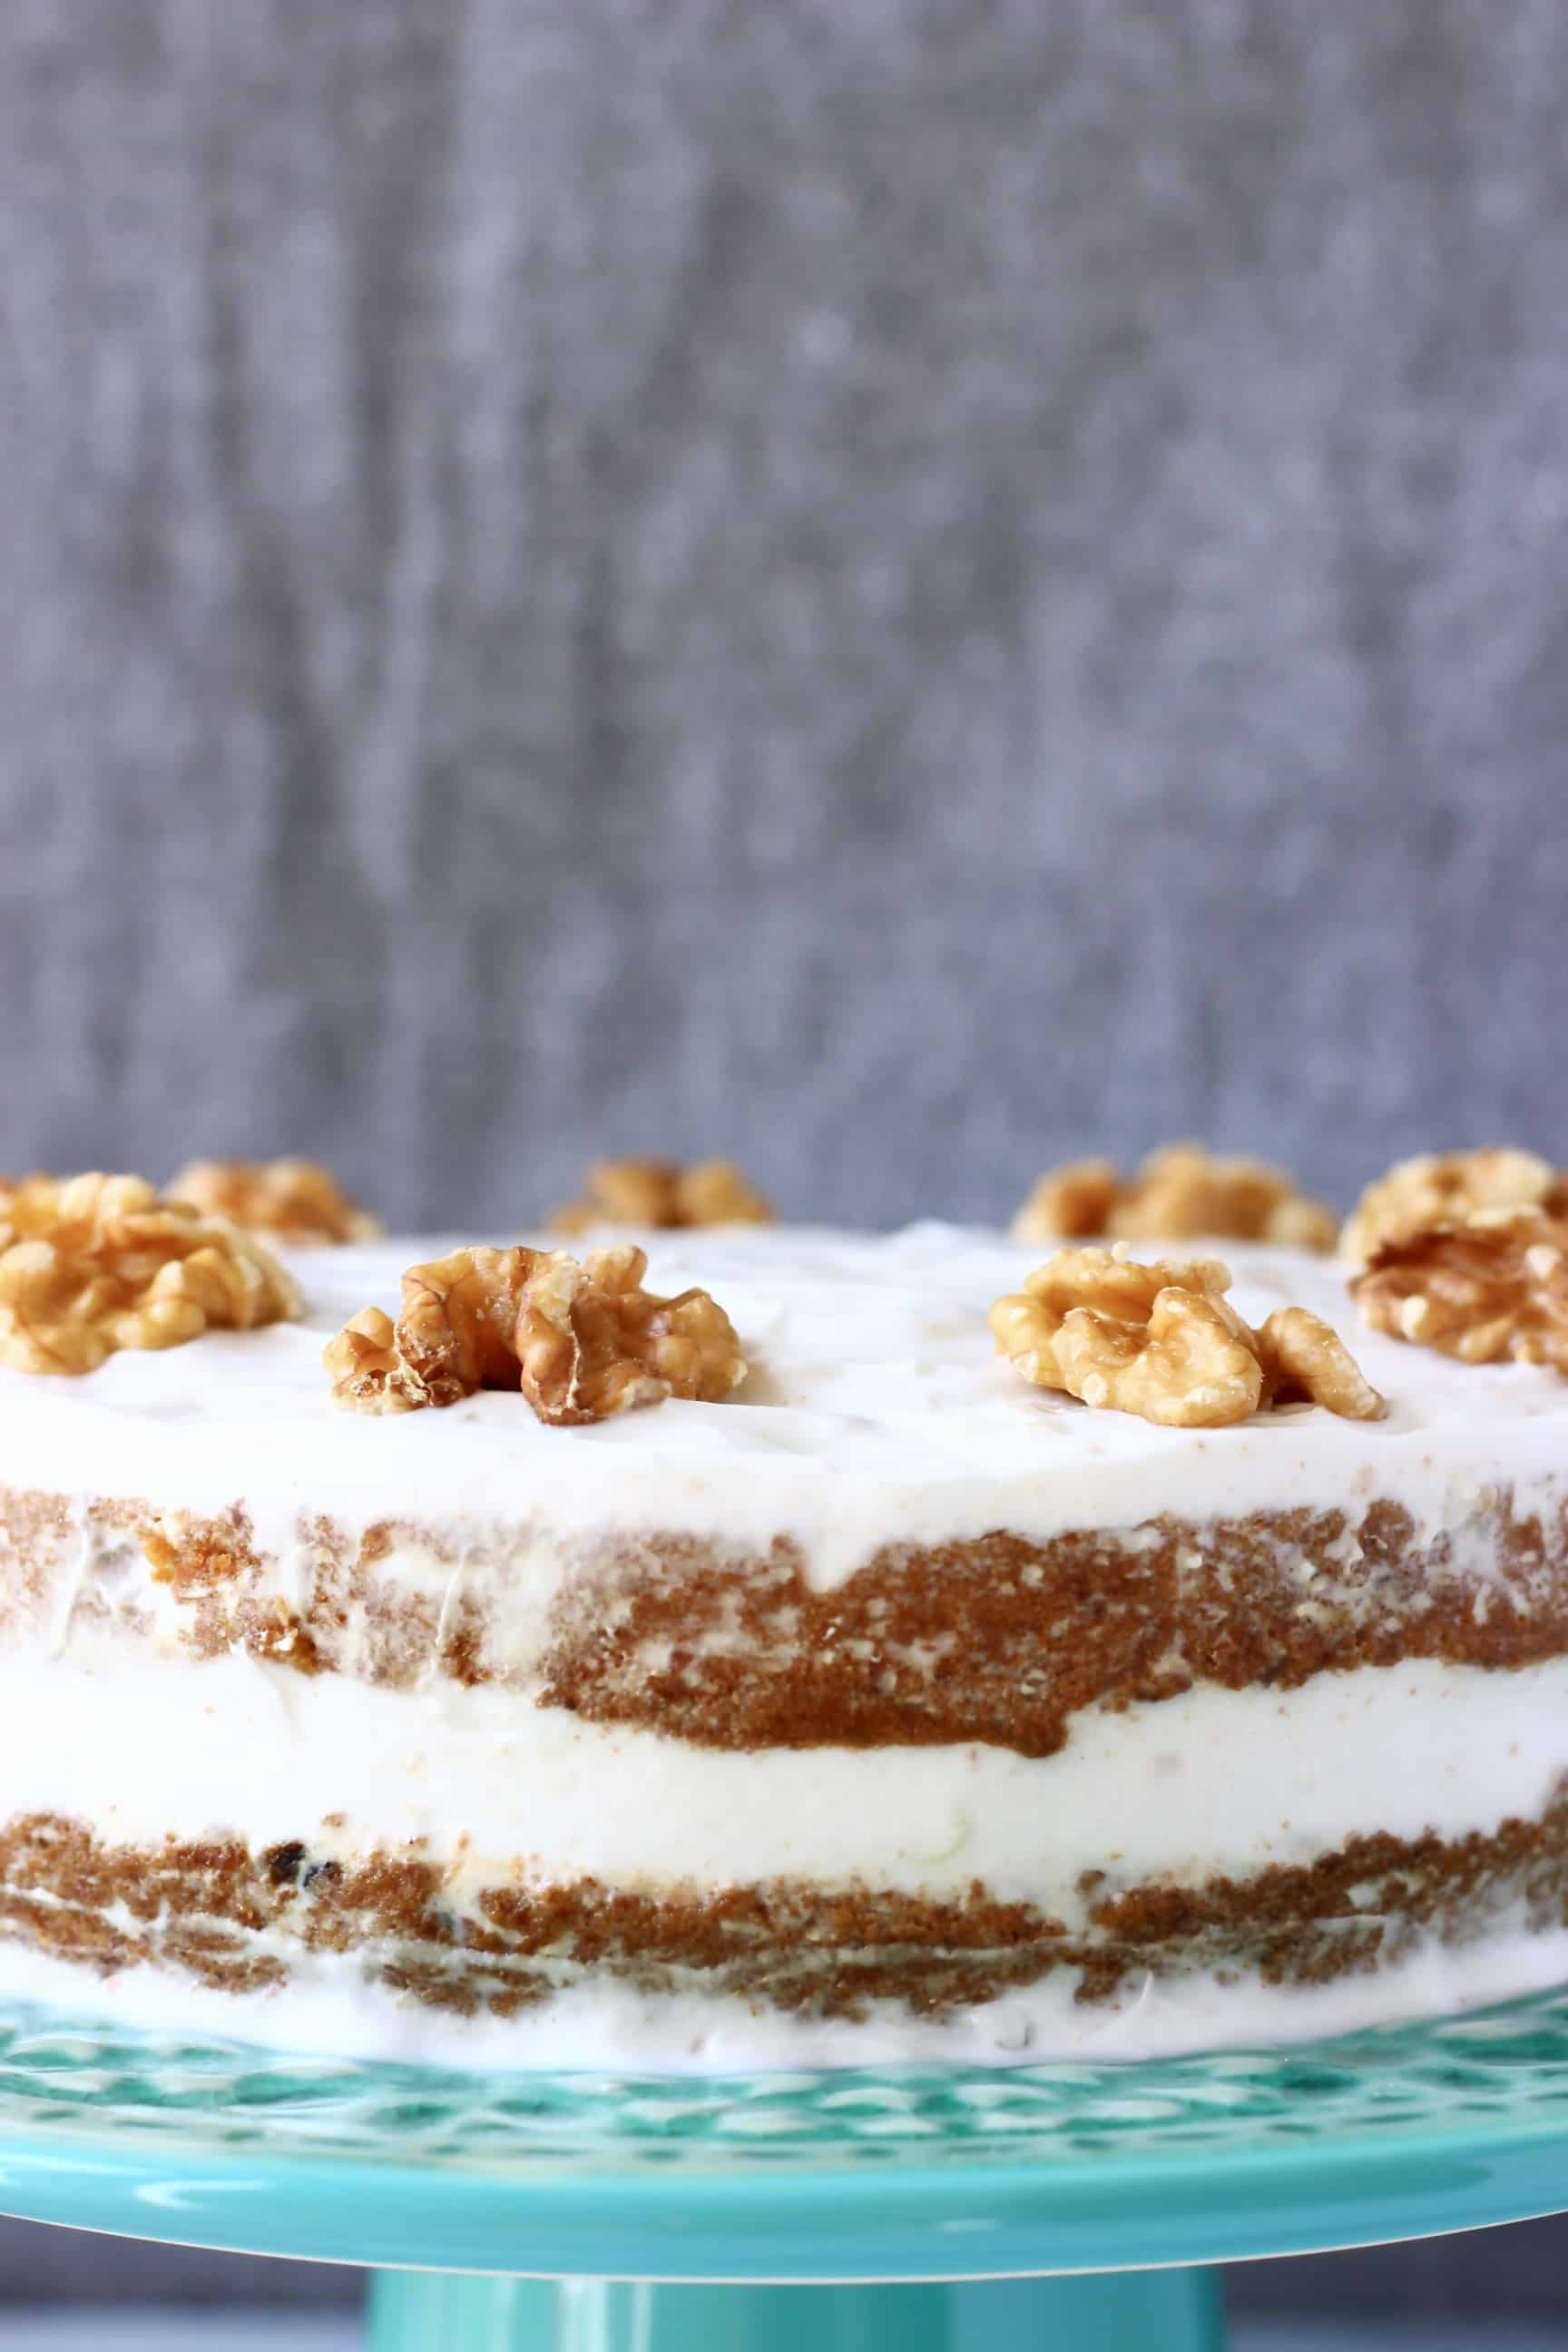 A vegan carrot cake covered in white frosting topped with walnuts against a grey background